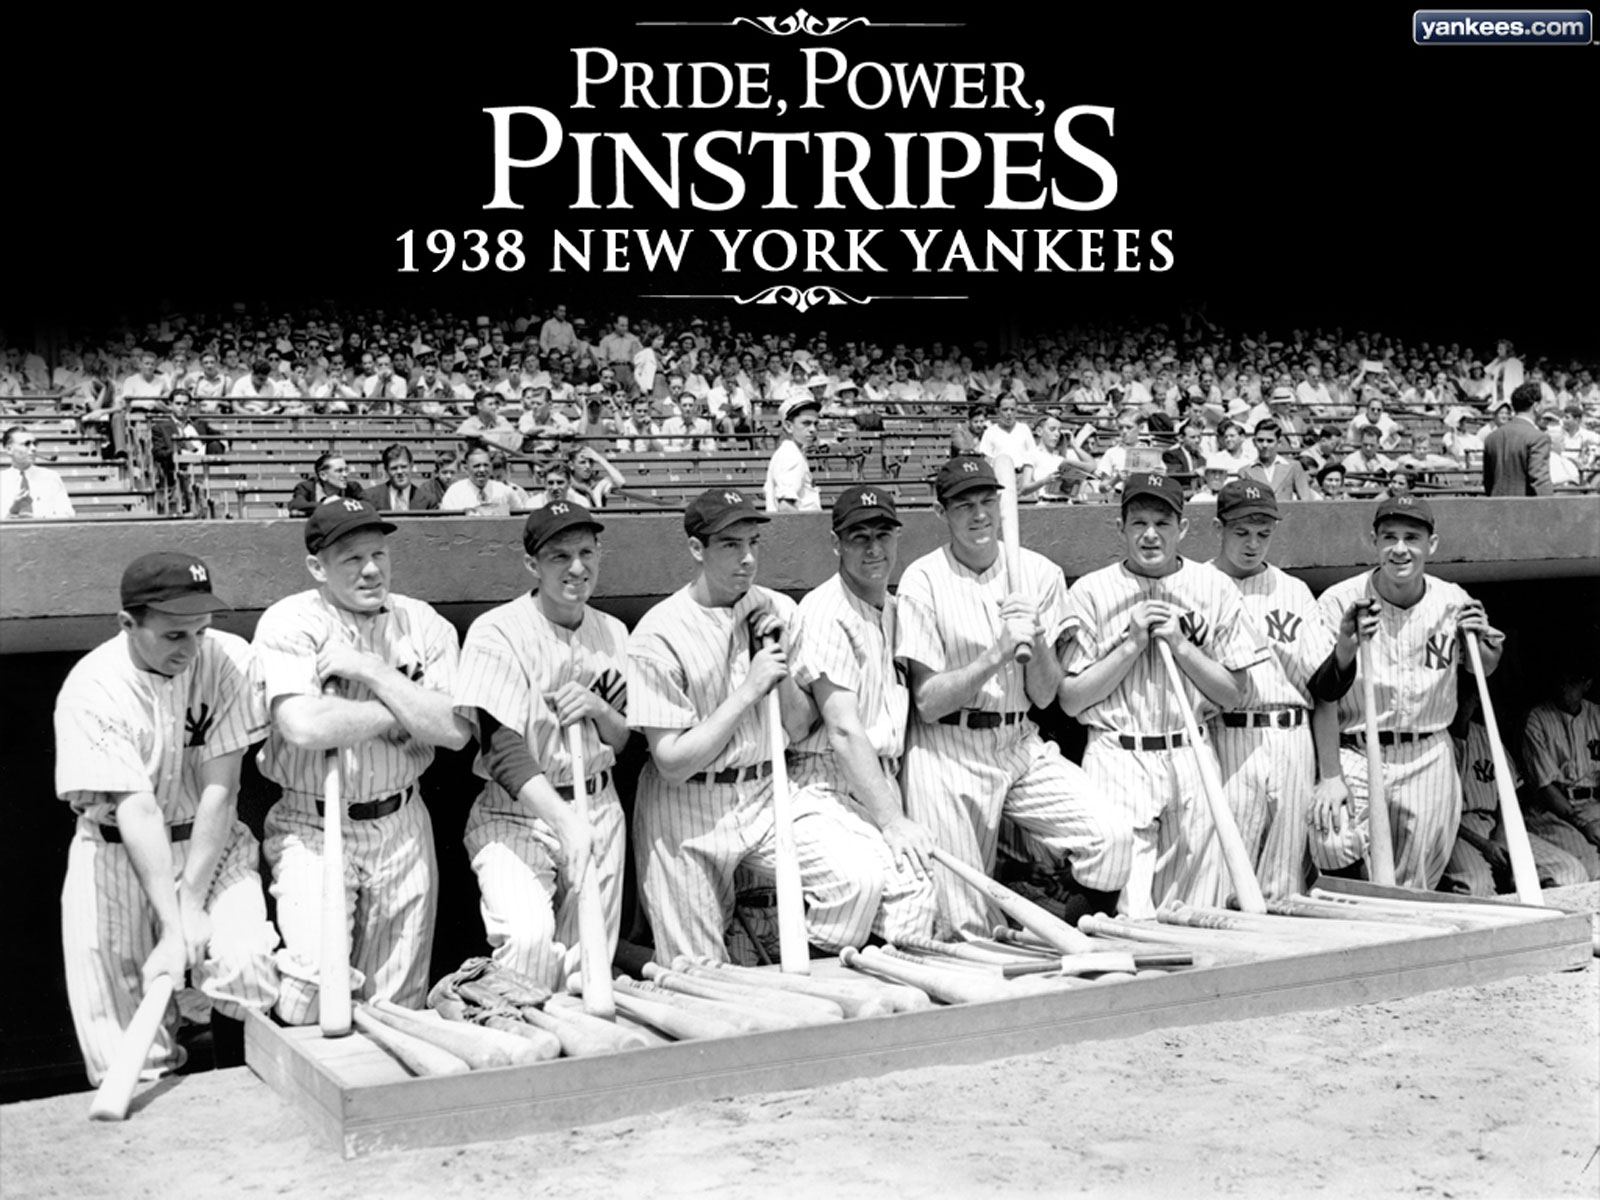 New York Yankees vintage wallpaper, from 1938